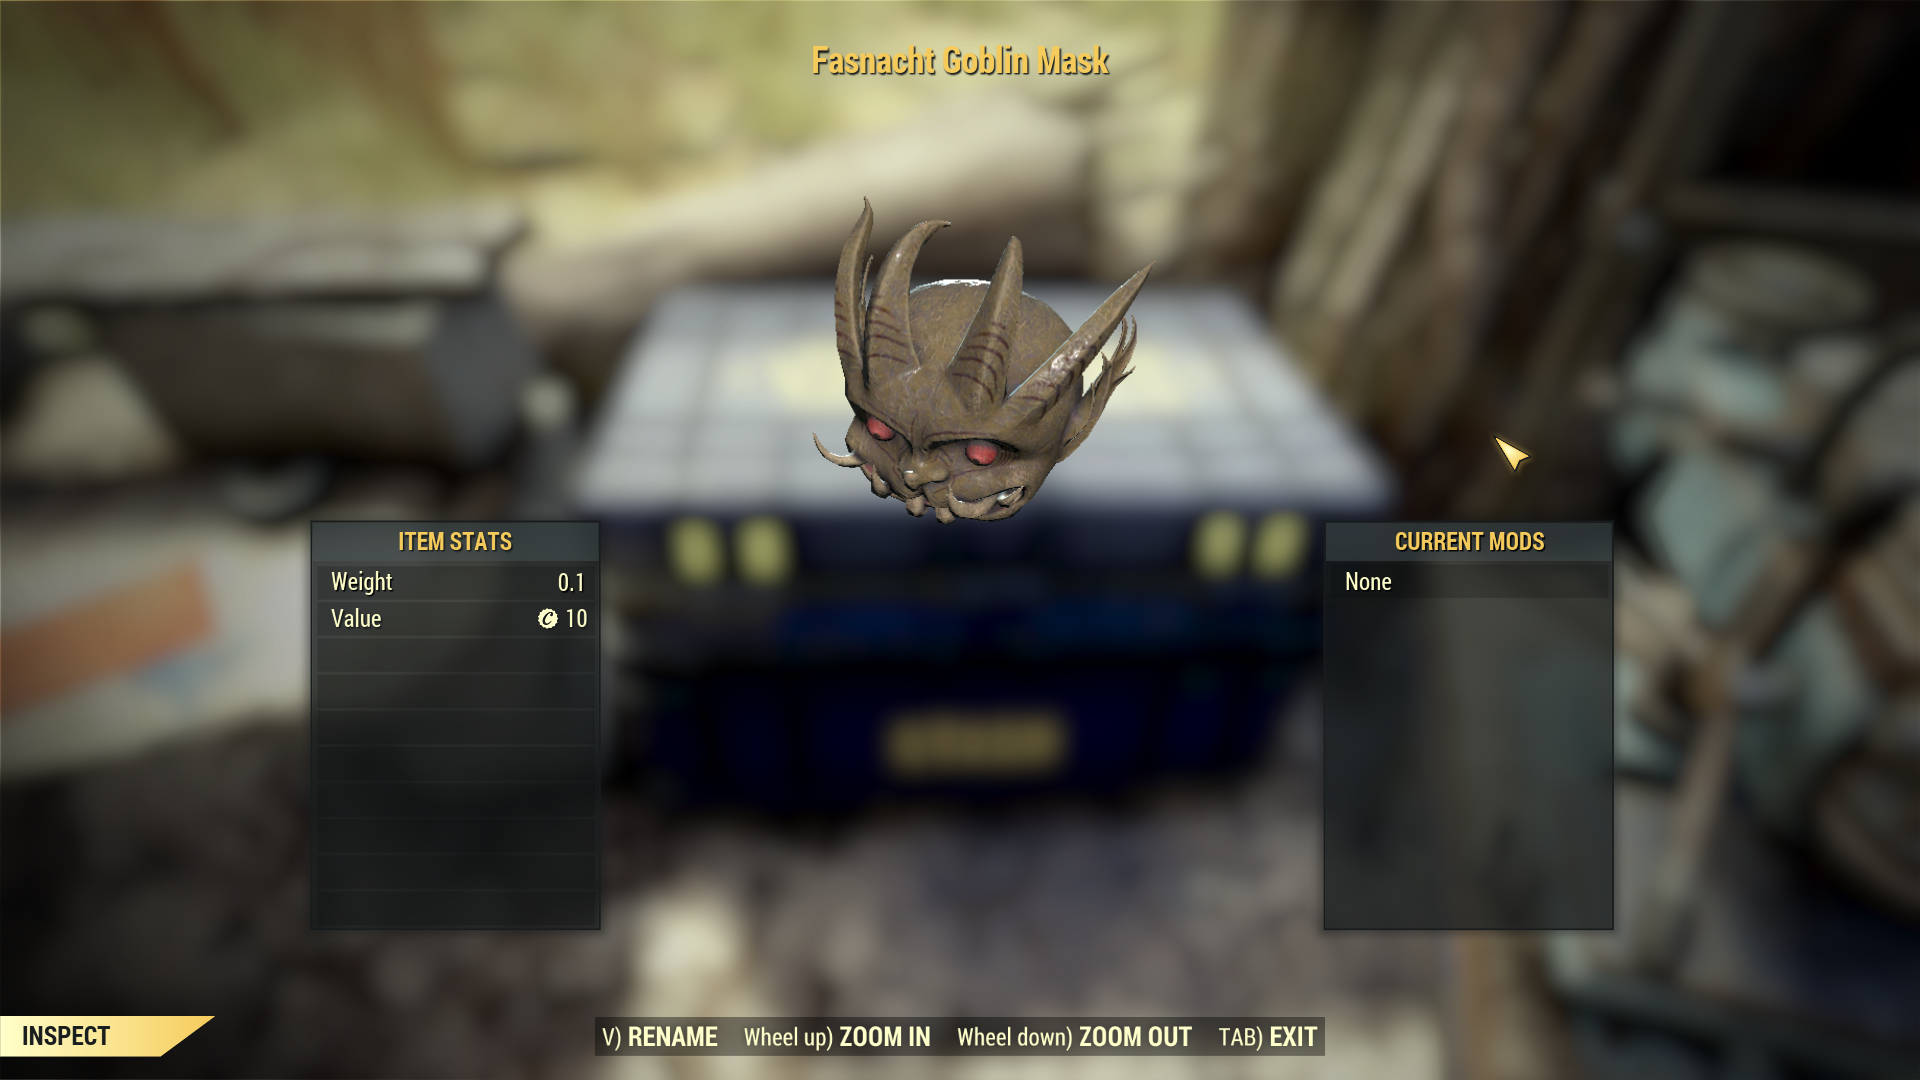 [Rare outfit] Fasnacht Goblin Mask